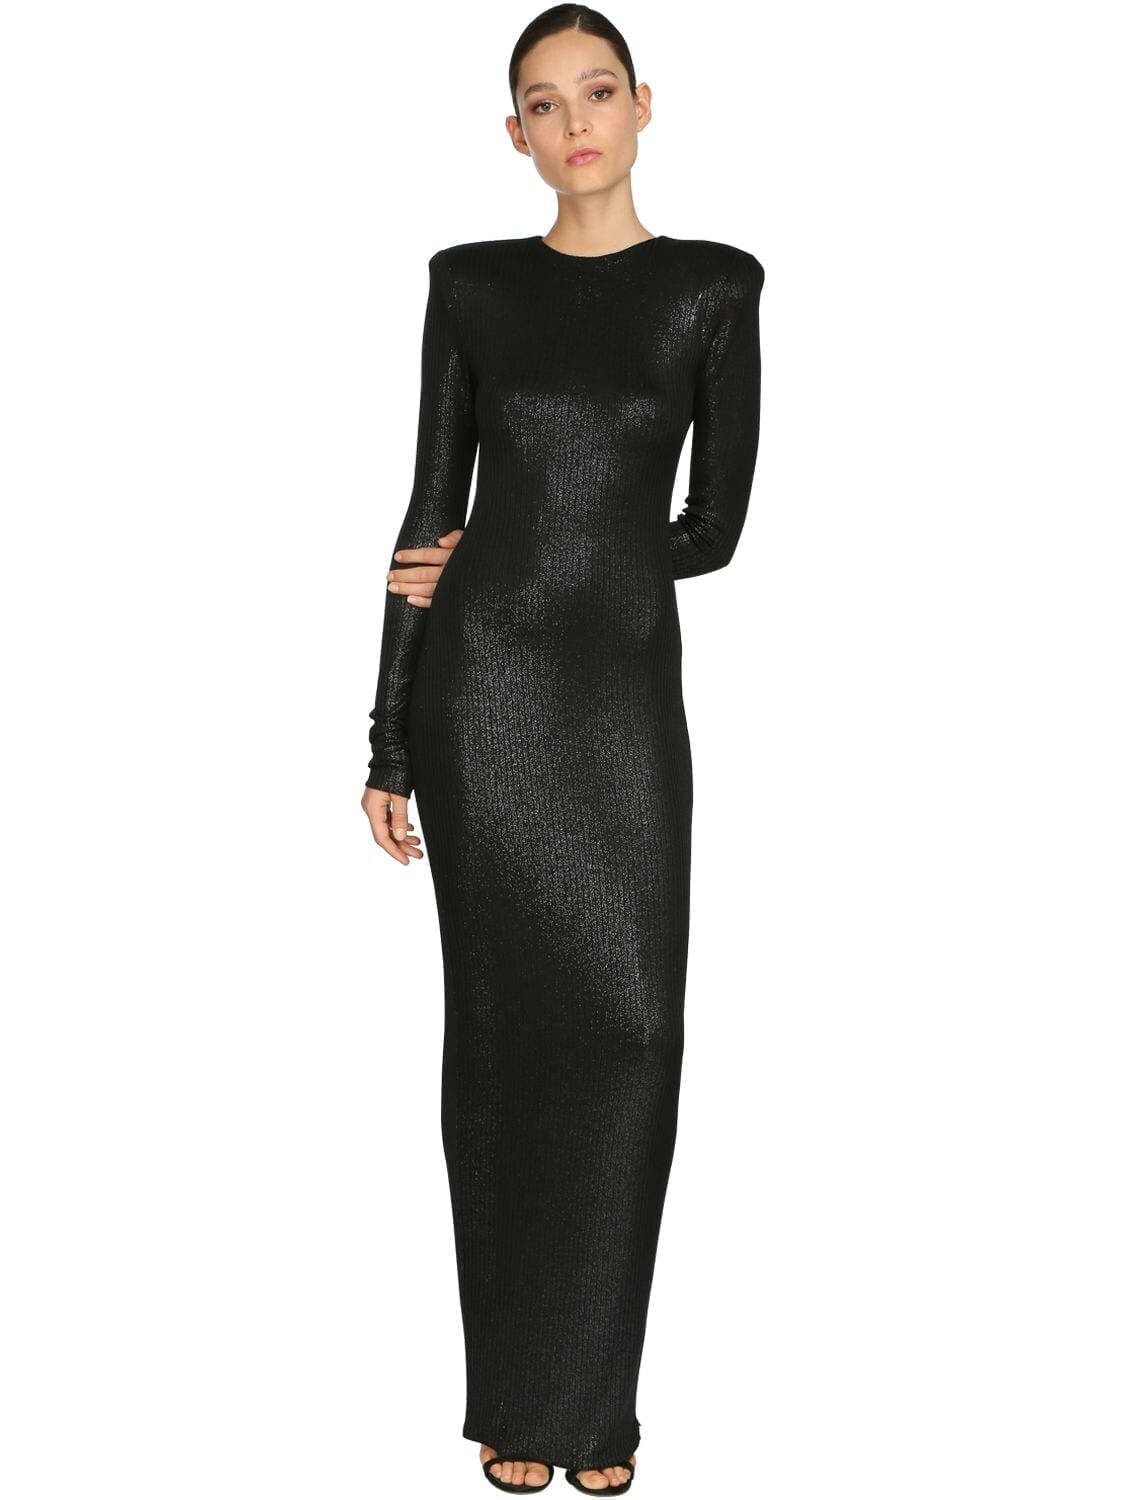 ALEXANDRE VAUTHIER Rib Jersey Lamé Long Dress